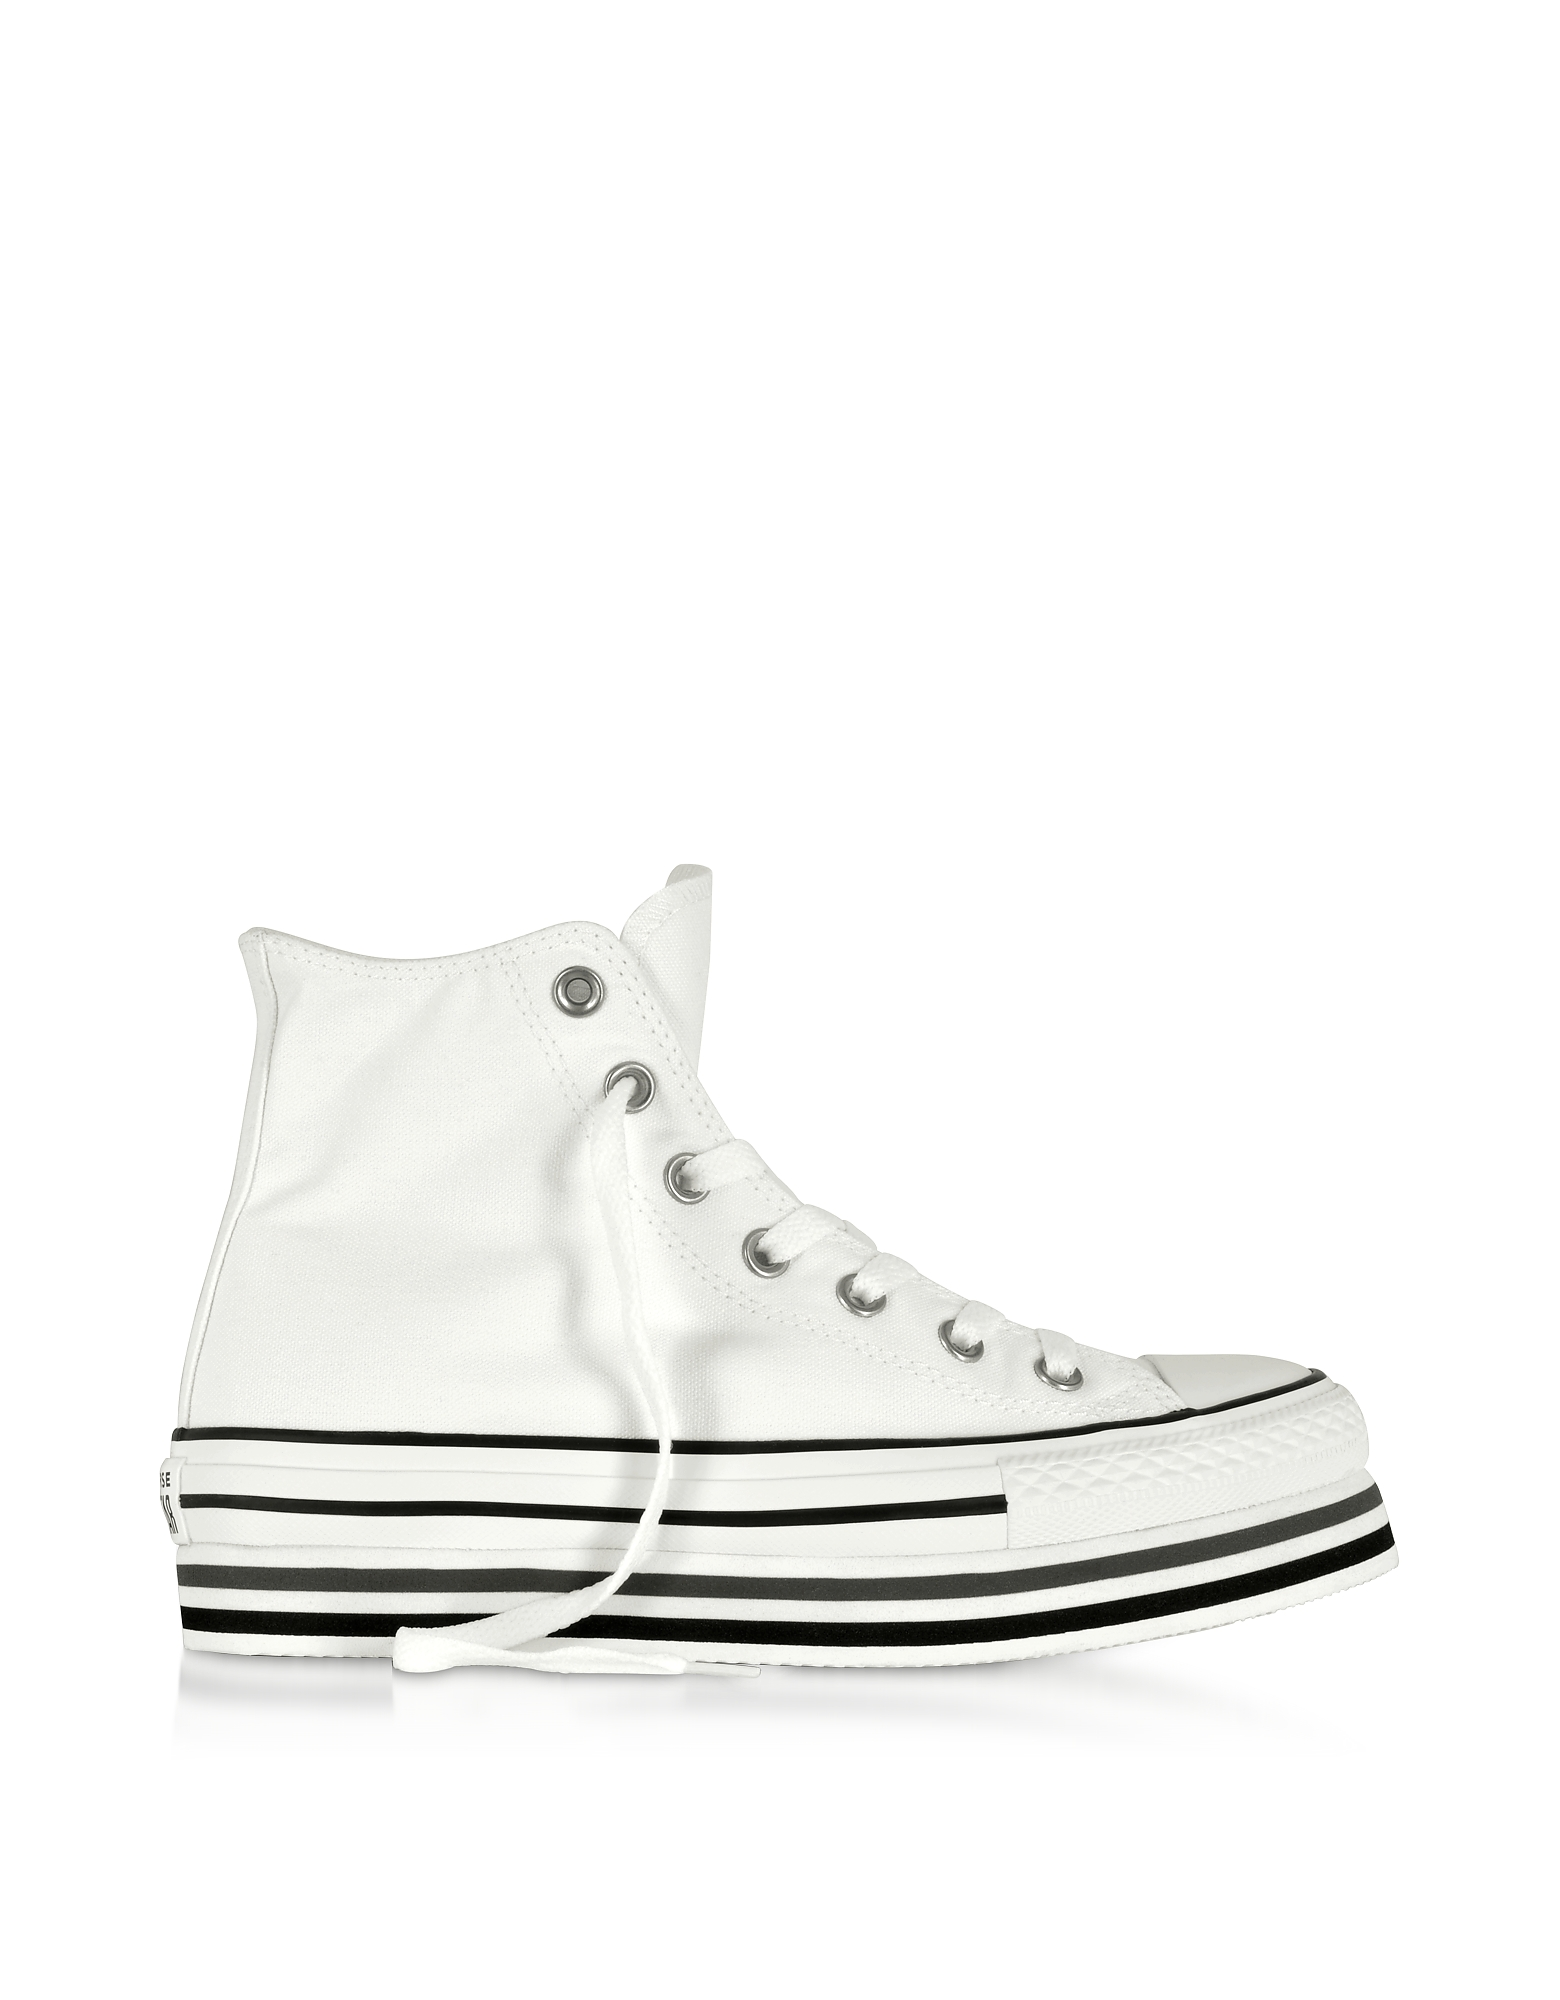 Chuck Taylor All Star Platform Layer White Sneakers